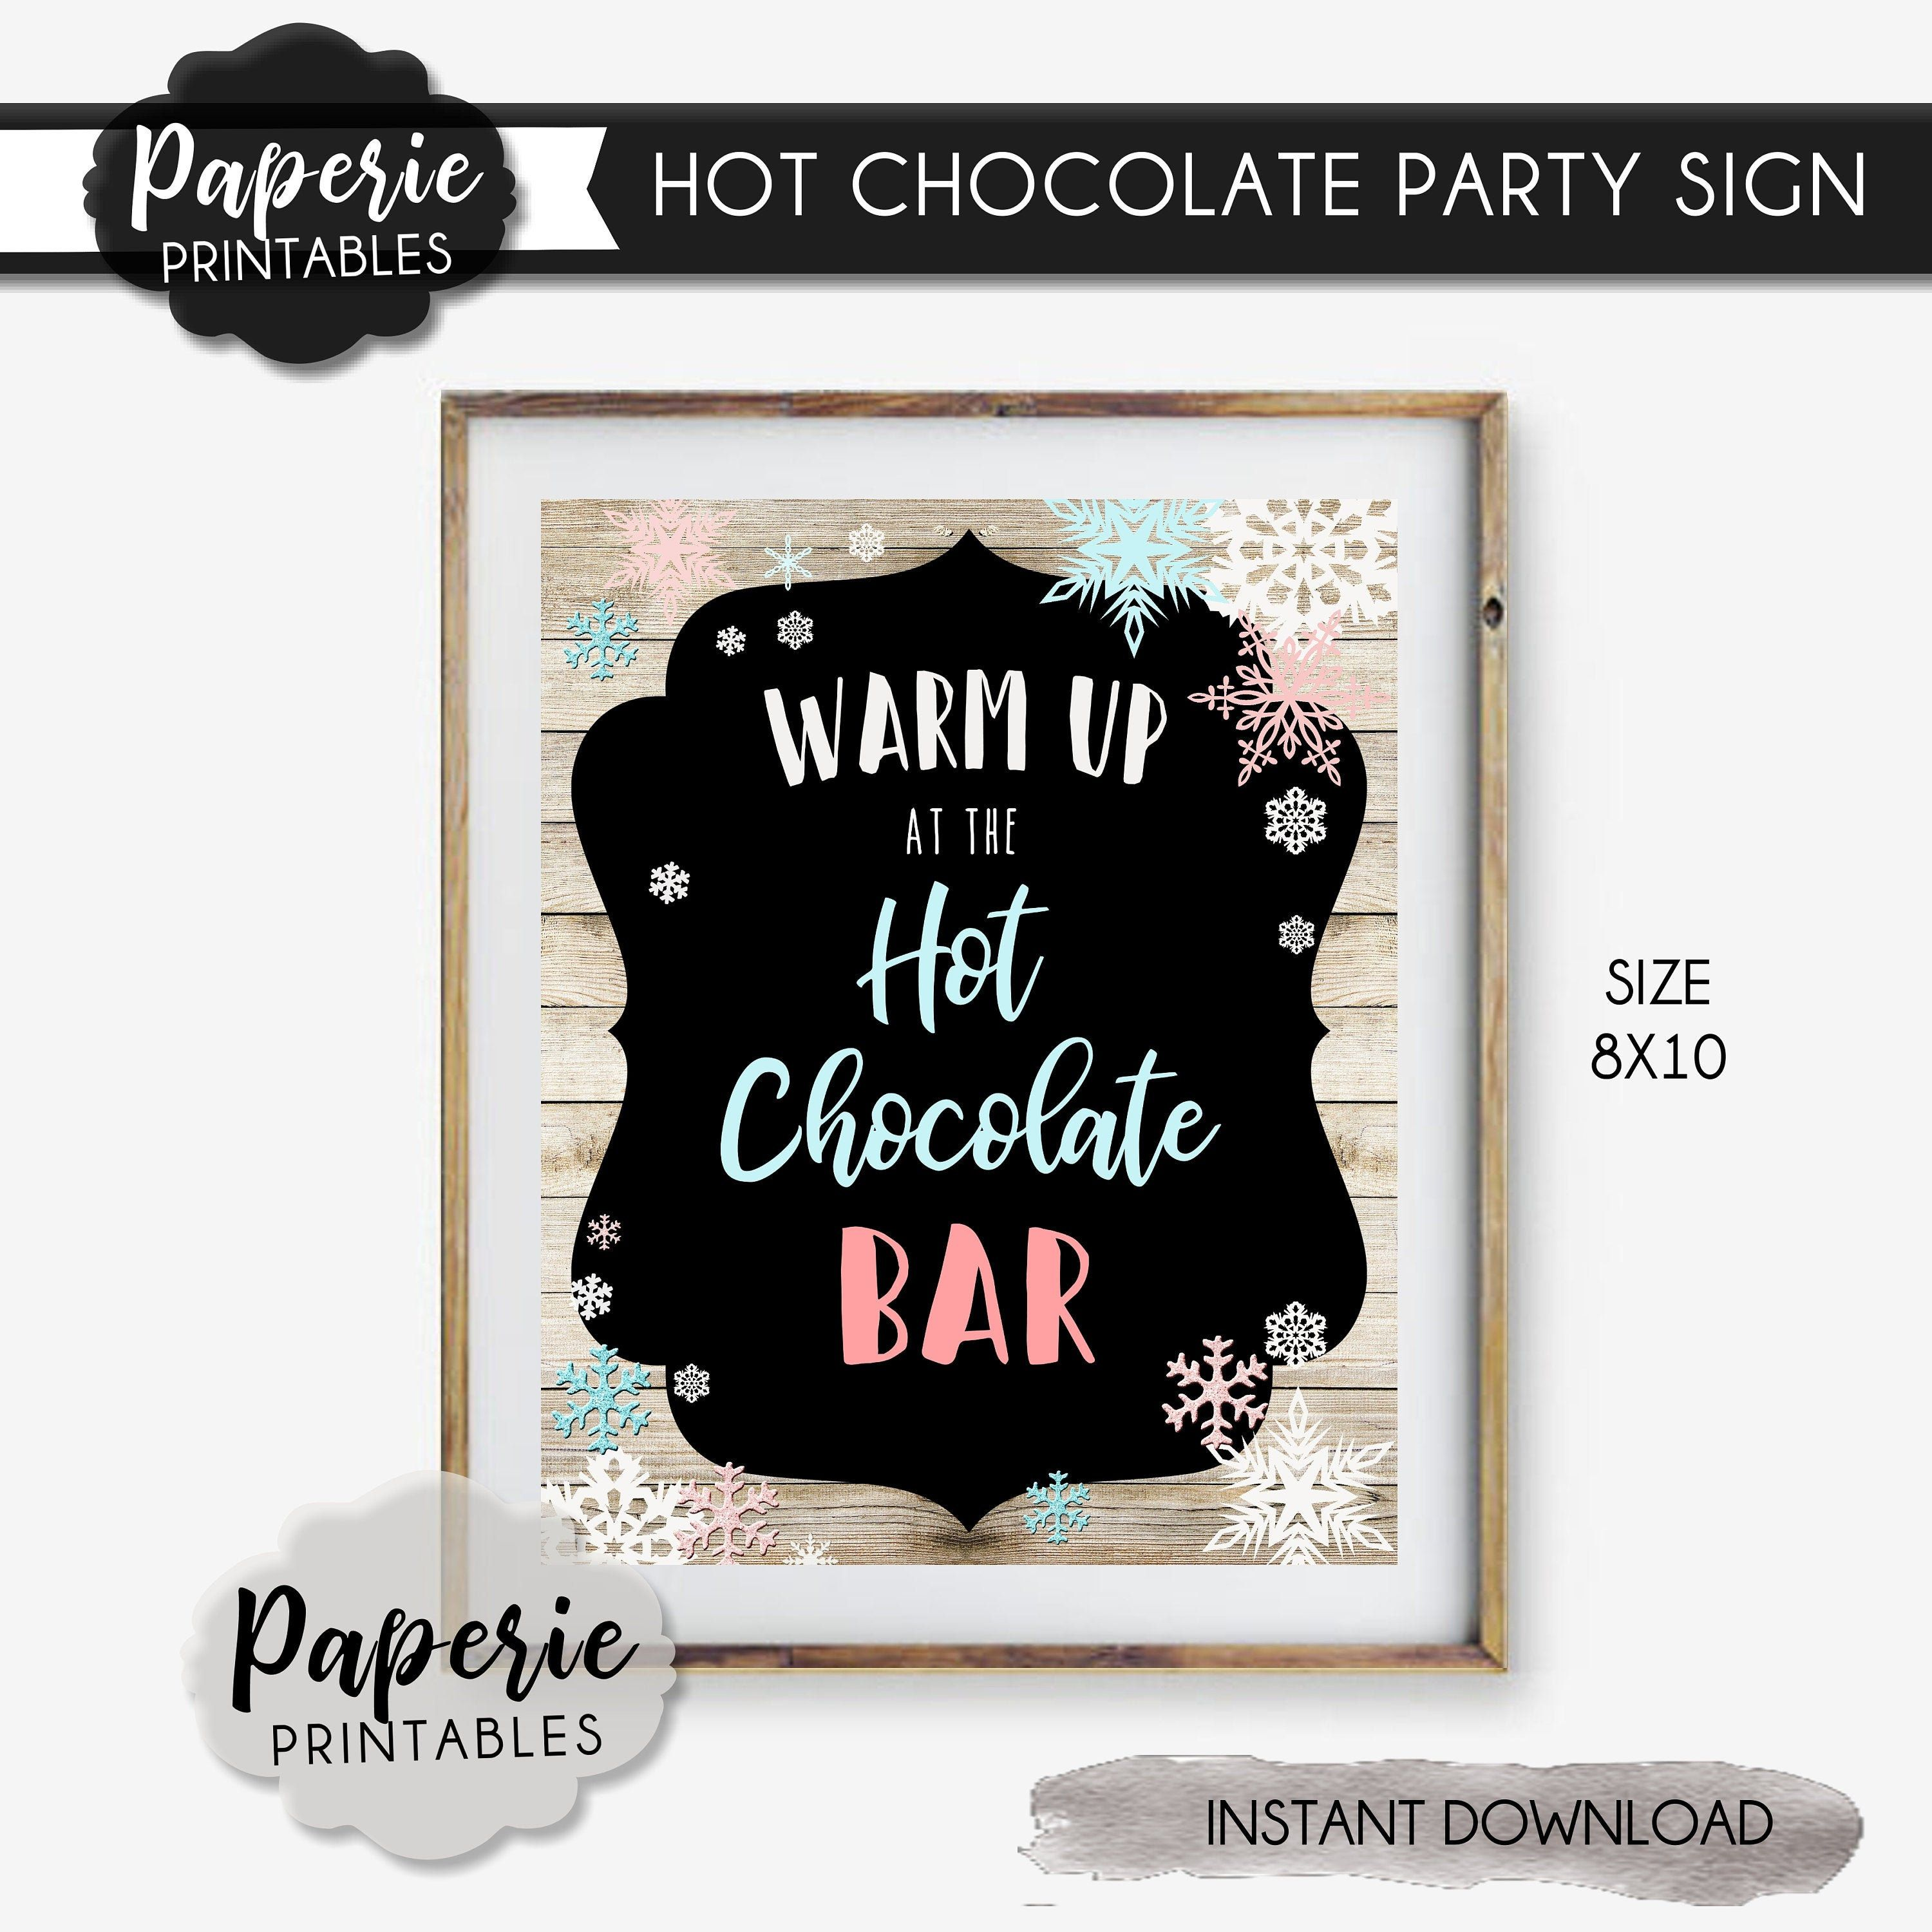 Hot Chocolate Bar Sign - 8x10 - Warm Up at the Hot Chocolate Bar - Winter ONEderland Party Sign - Winter Wonderland - INSTANT DOWNLOAD-#BP25 #hotchocolatebar